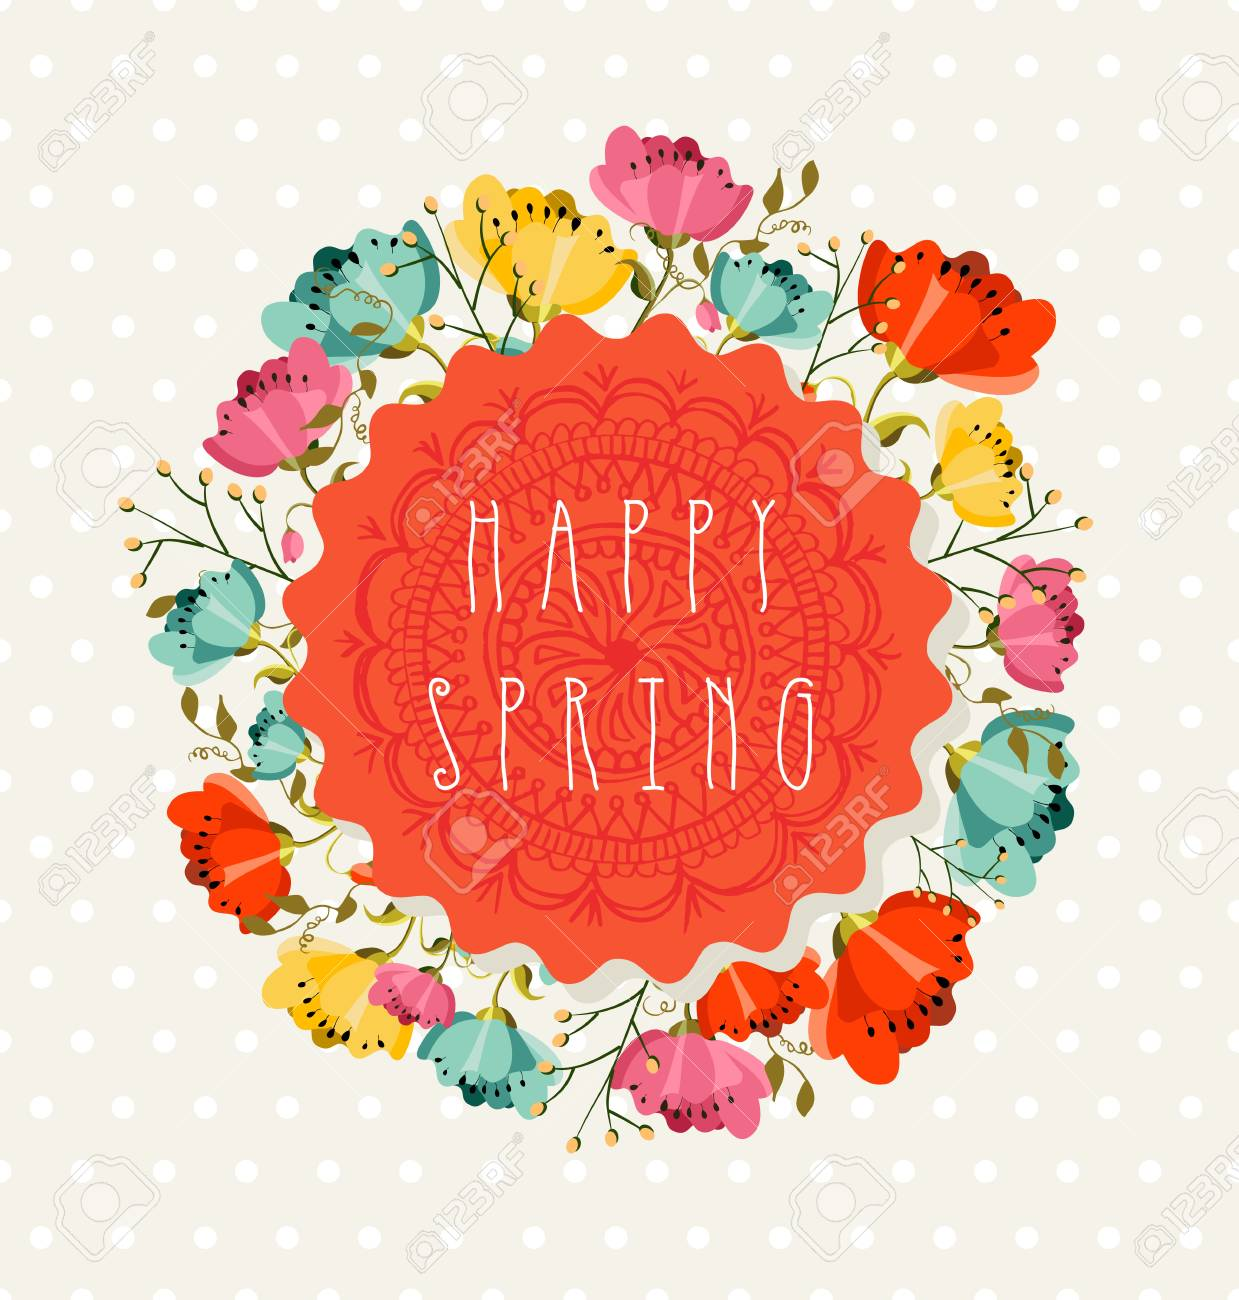 Colorful happy spring greeting card with flowers bouquet composition colorful happy spring greeting card with flowers bouquet composition eps10 vector file organized in layers m4hsunfo